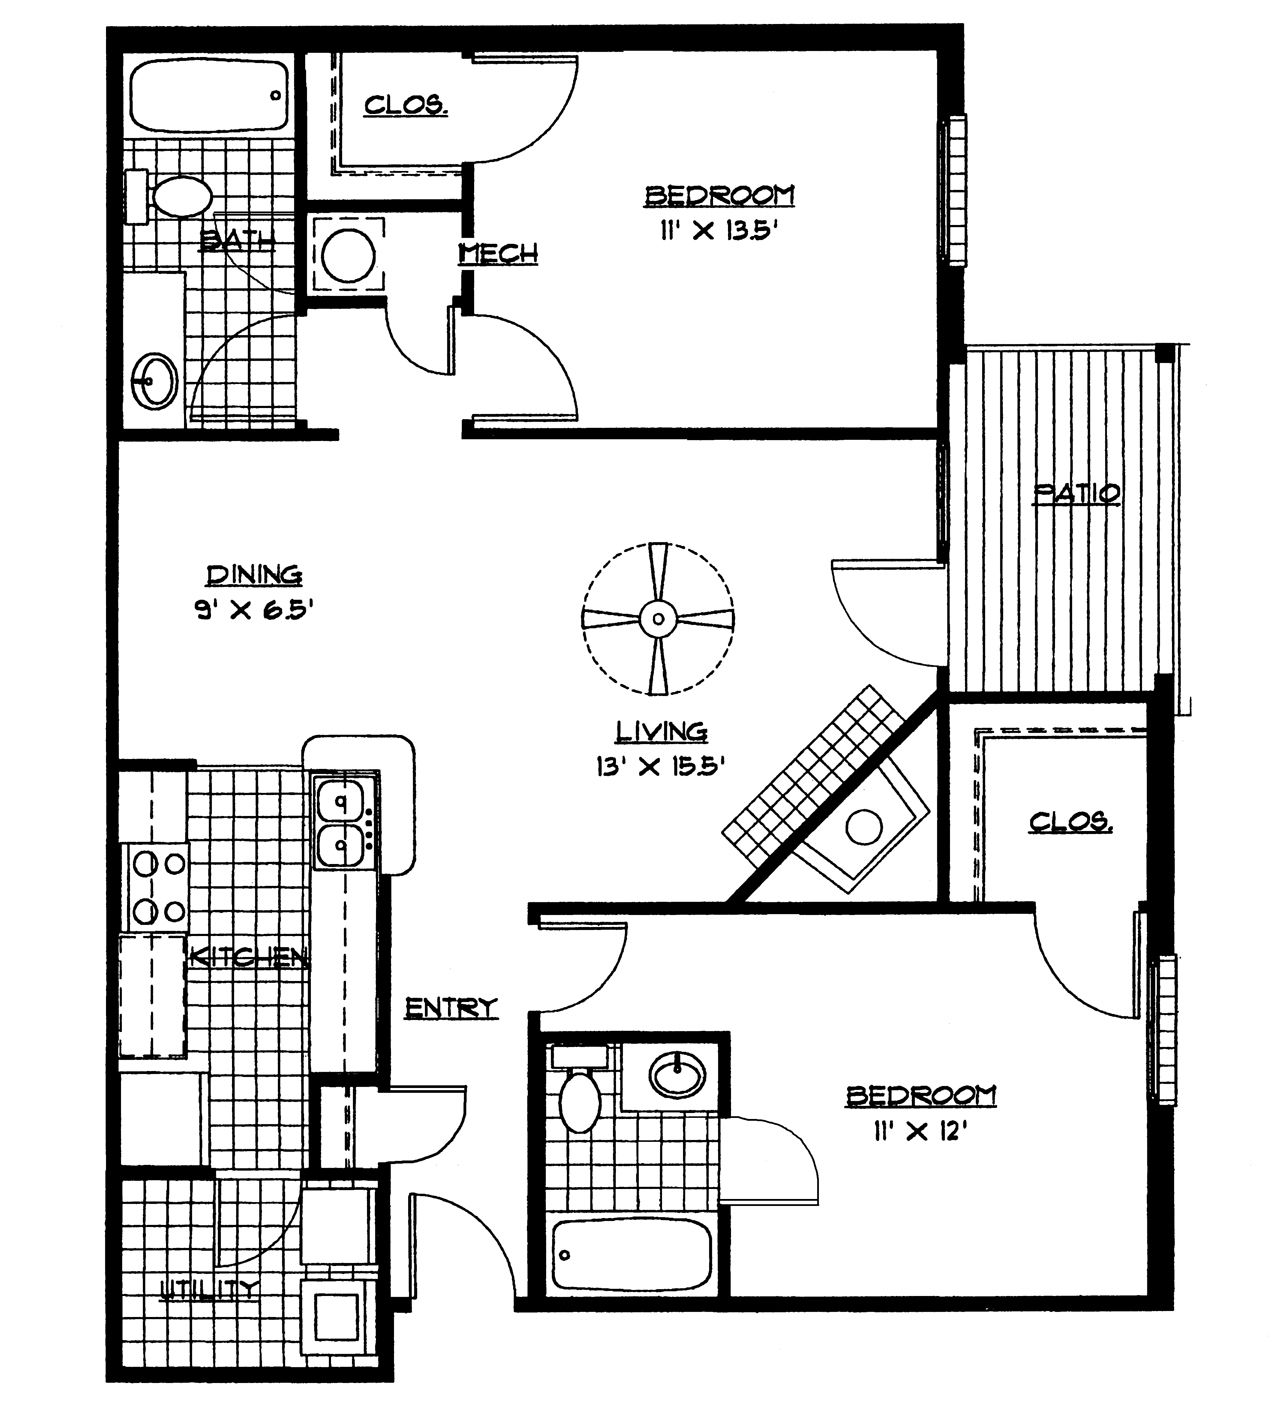 Handicap Accessible Modular Home Floor Plans together with 94ec712a8cba25fb Victorian House Floor Plans Old Victorian House Plans likewise D4b223e2e47db0f3 Simple House Plans 3 Bedroom House Plans moreover Bathroom Laundry Room  bo Floor Plans besides House Plans For A Narrow Lot. on home tiny house plans